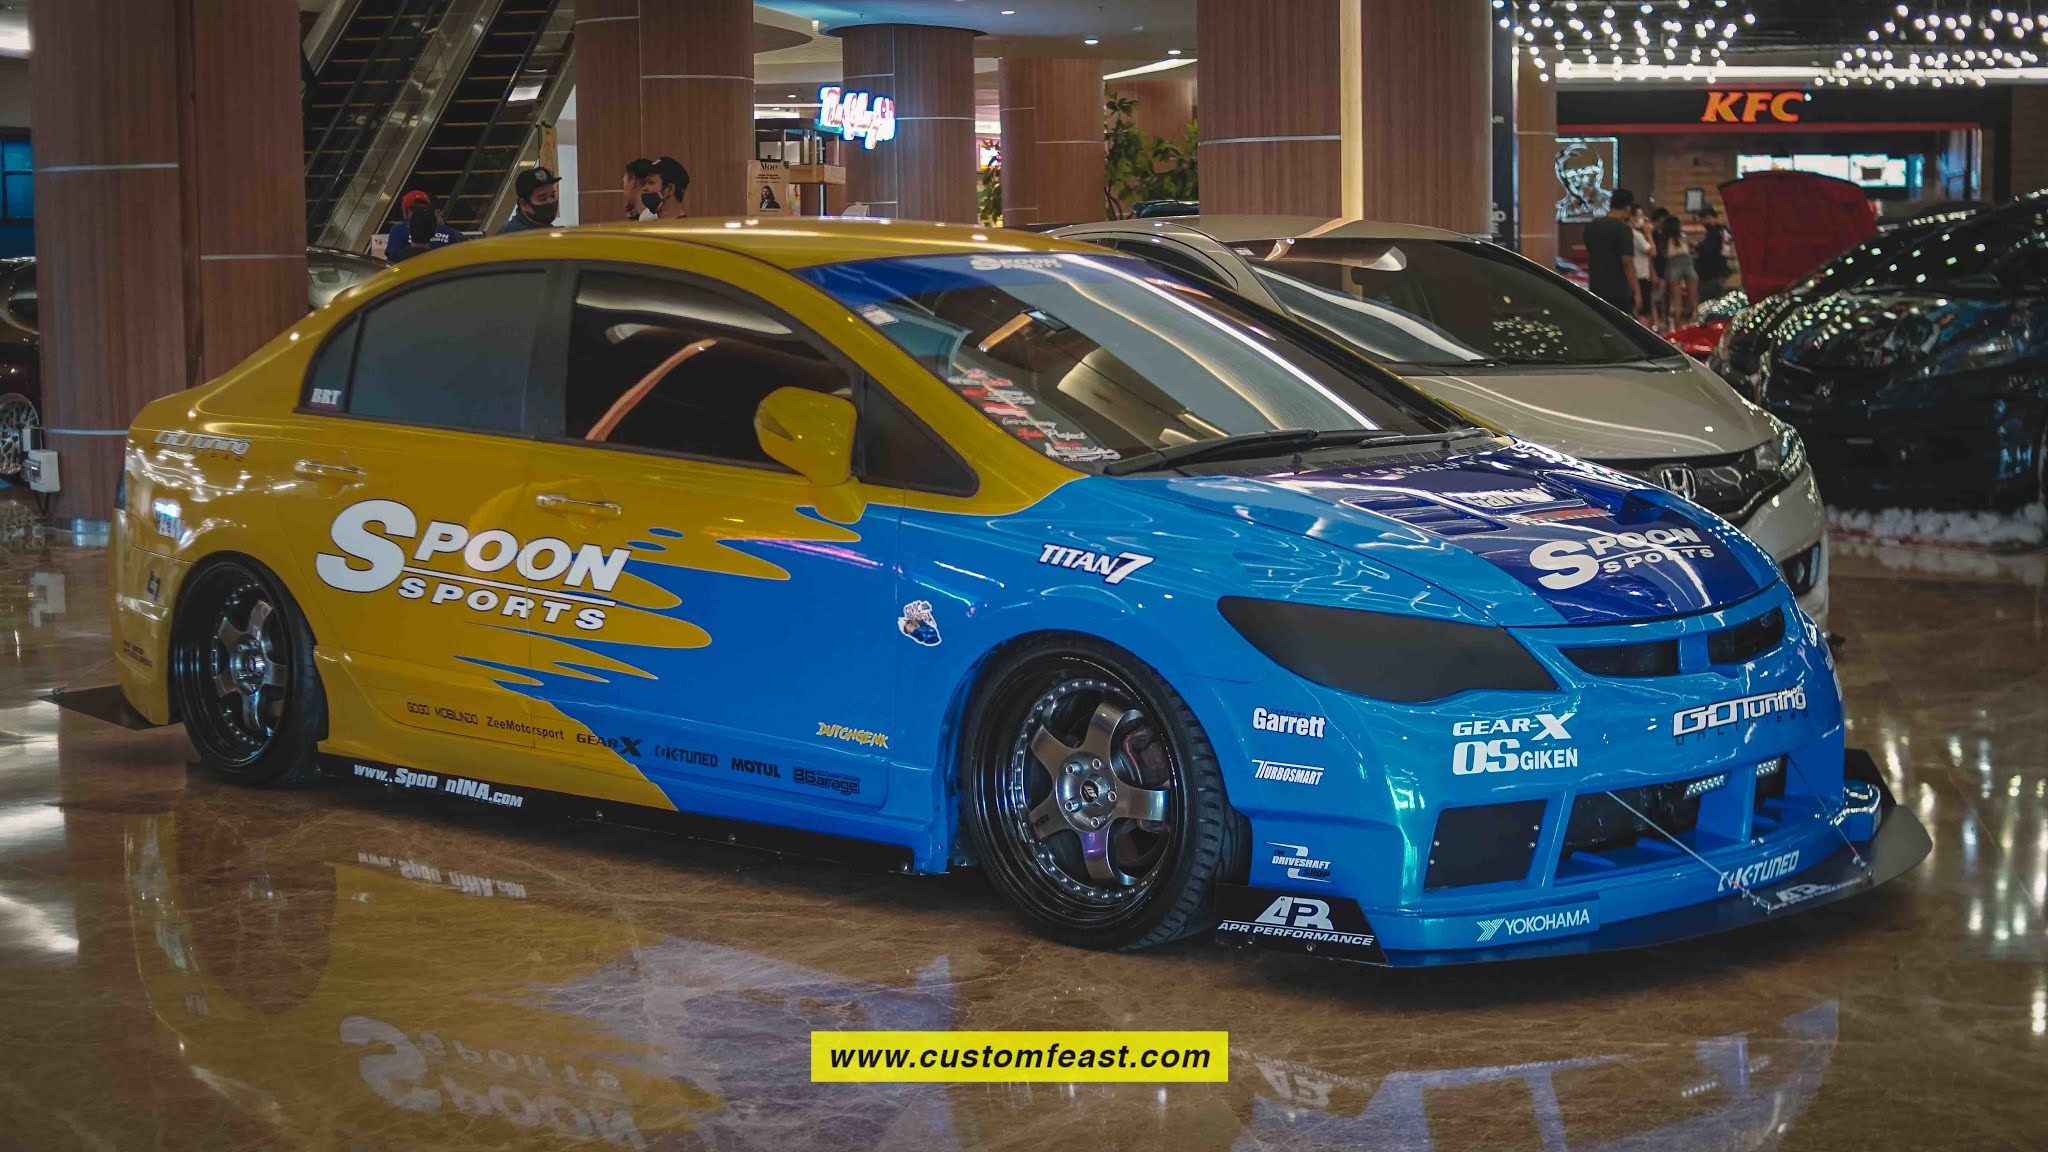 Modified Cars For Sale USA Spoon Sports Car